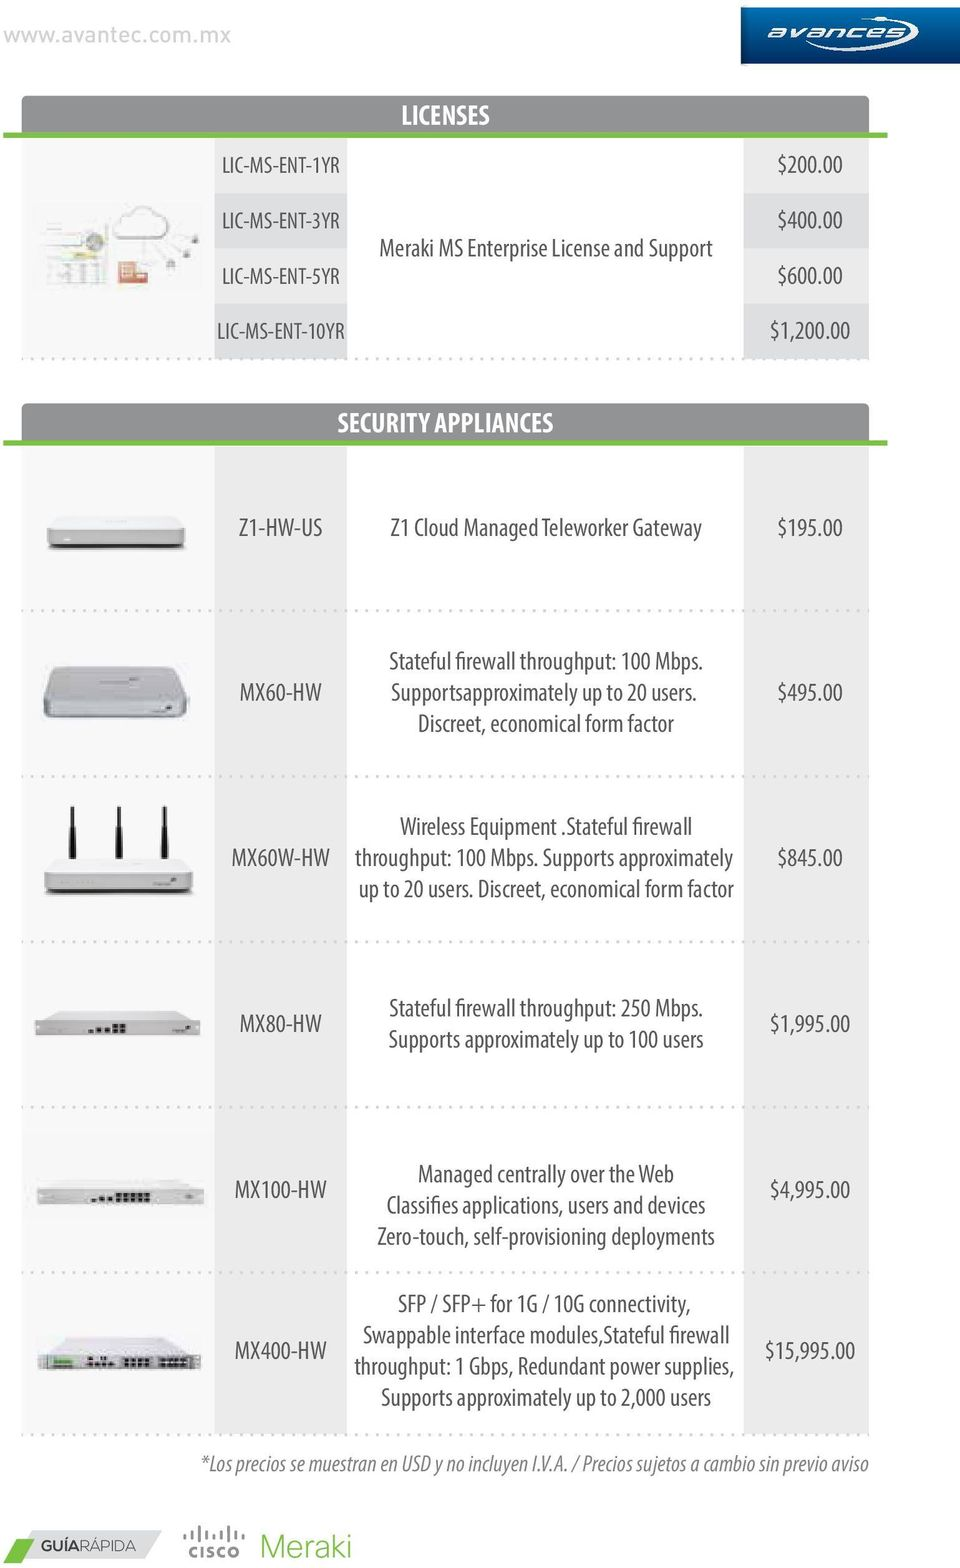 00 MX60W-HW Wireless Equipment.Stateful firewall throughput: 100 Mbps. Supports approximately up to 20 users. Discreet, economical form factor $845.00 MX80-HW Stateful firewall throughput: 250 Mbps.